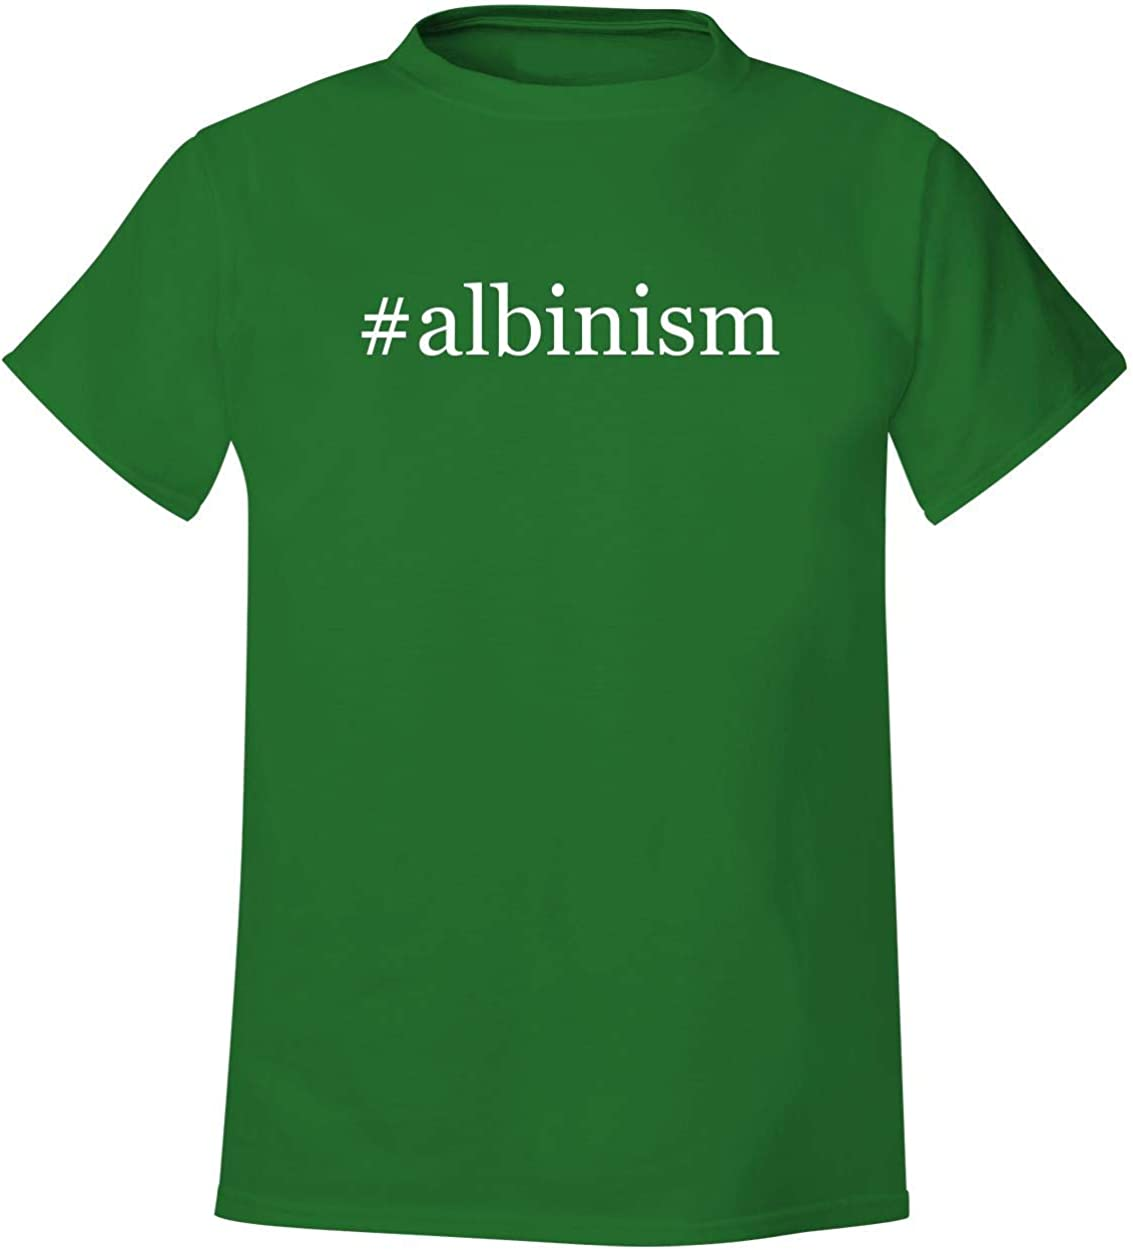 #Albinism - Men'S Hashtag Soft & Comfortable T-Shirt